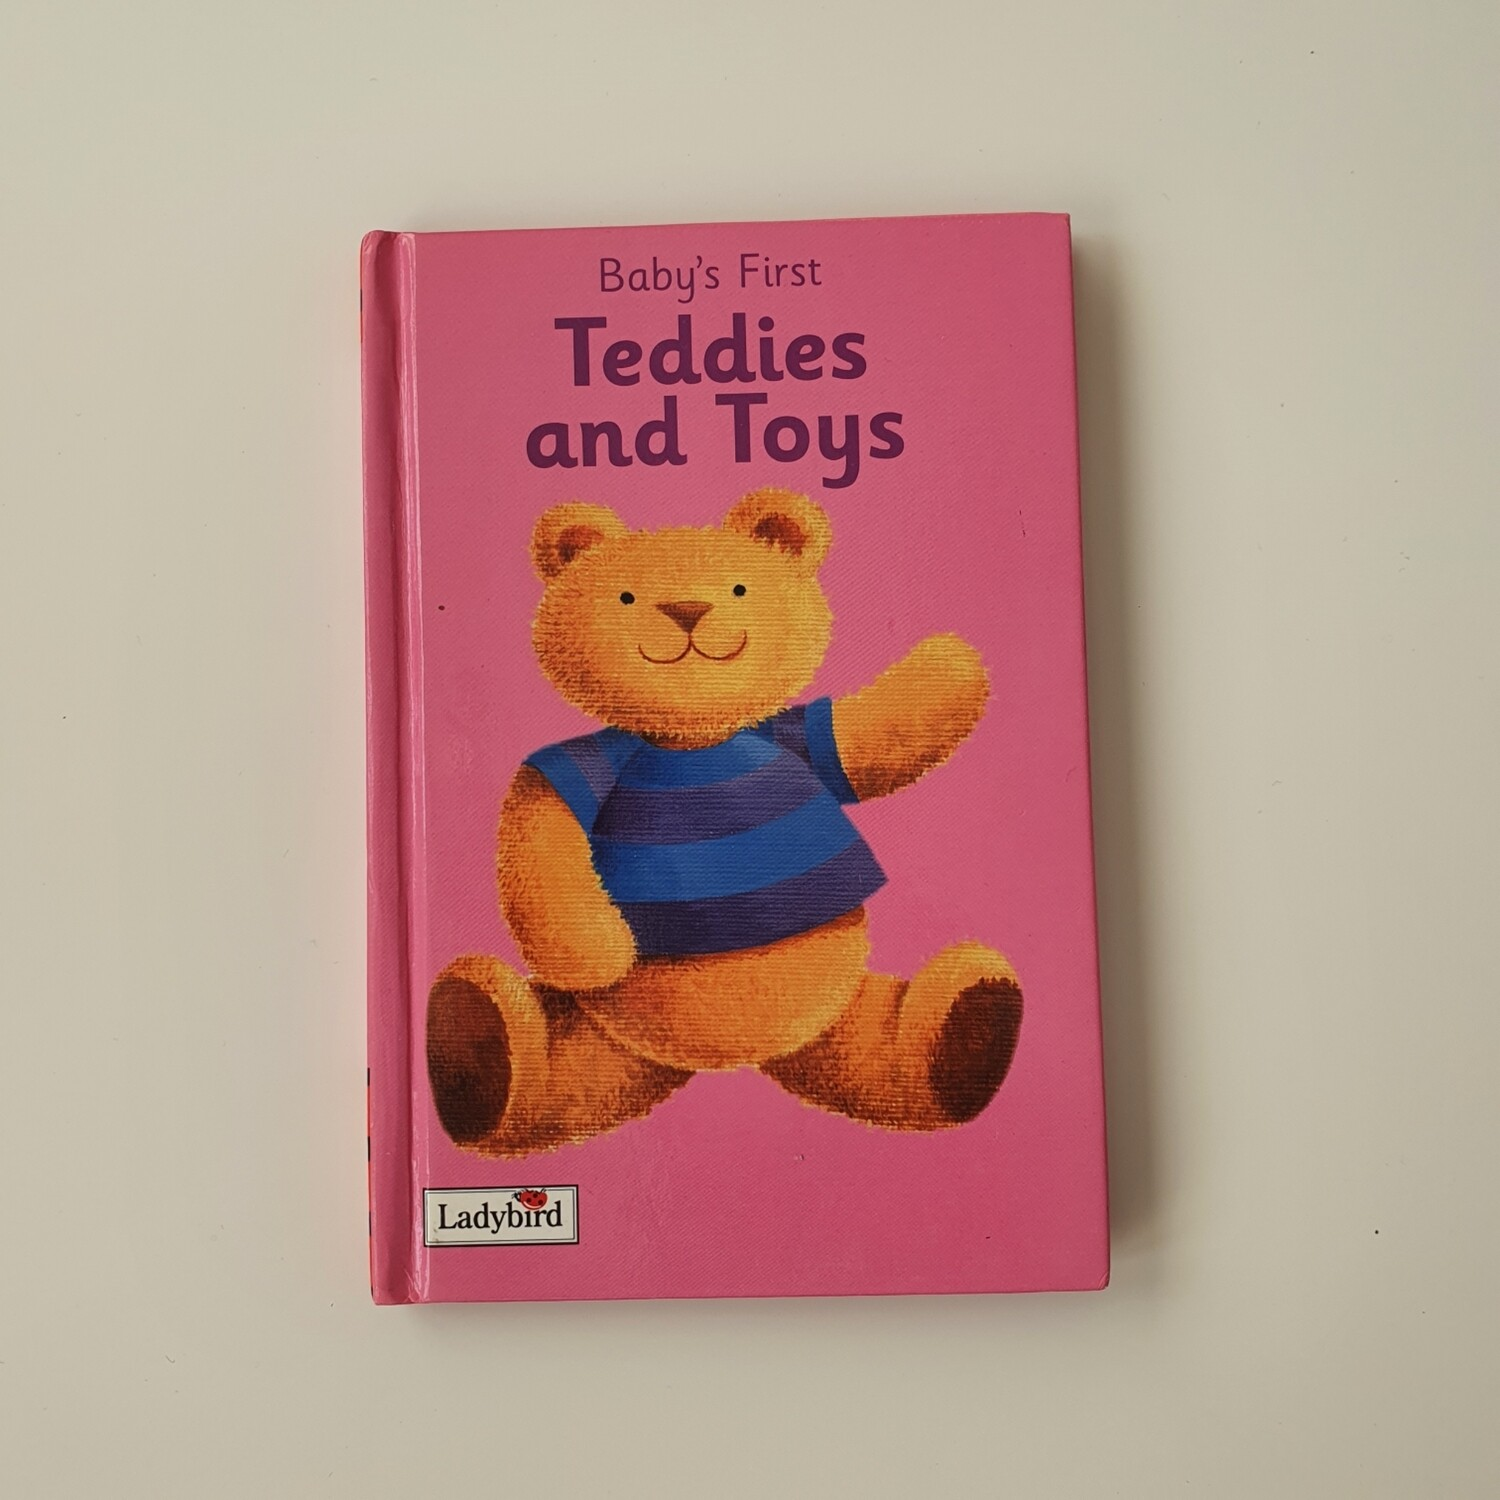 Baby First Teddies and Toys teddy